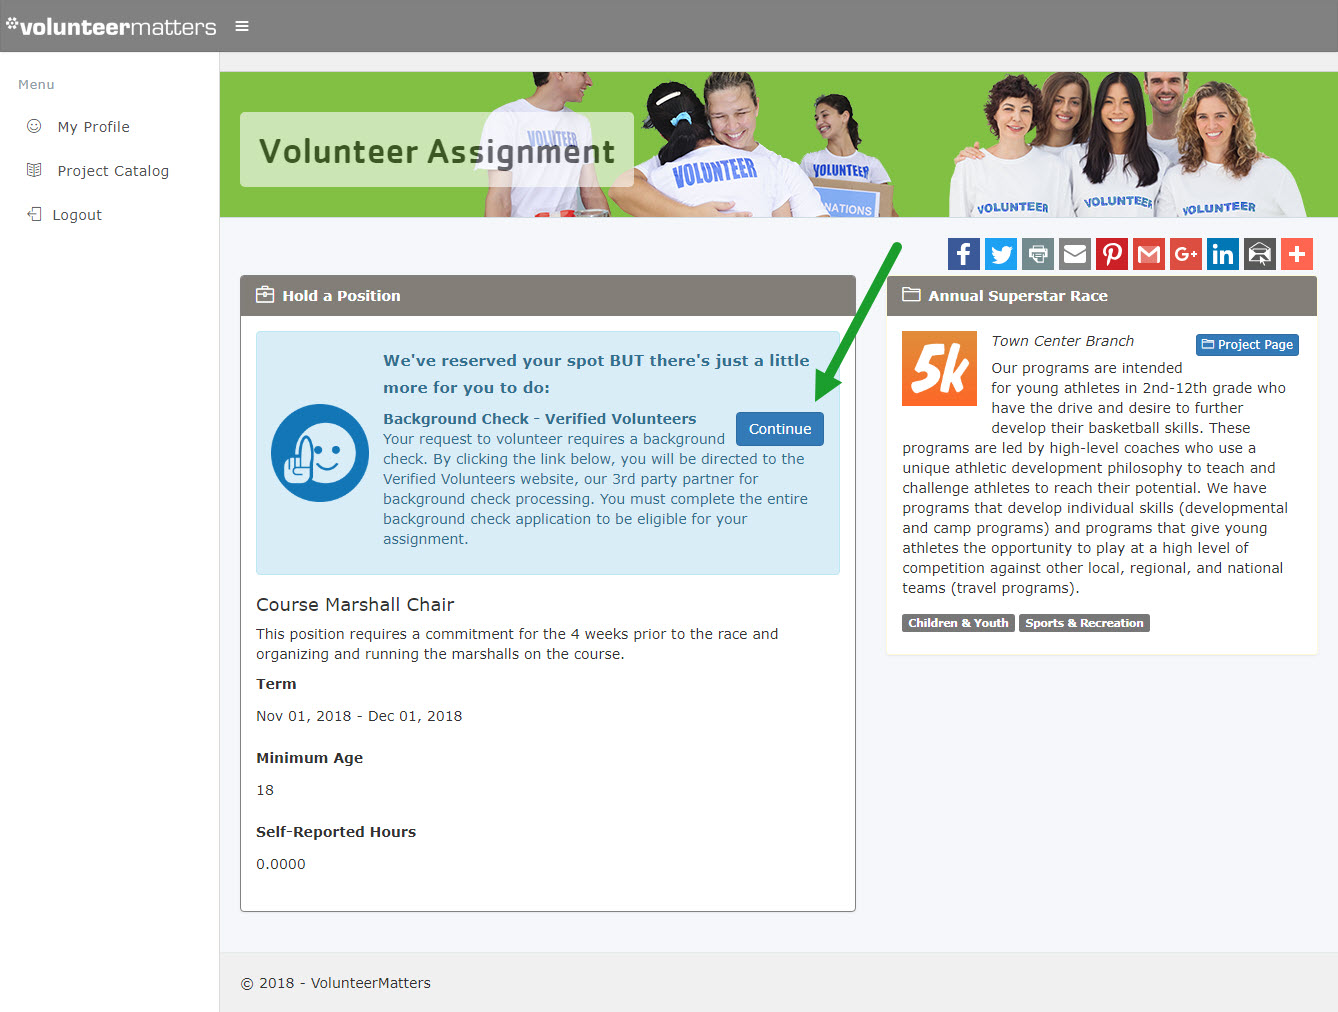 Verified_Volunteers_6.jpg